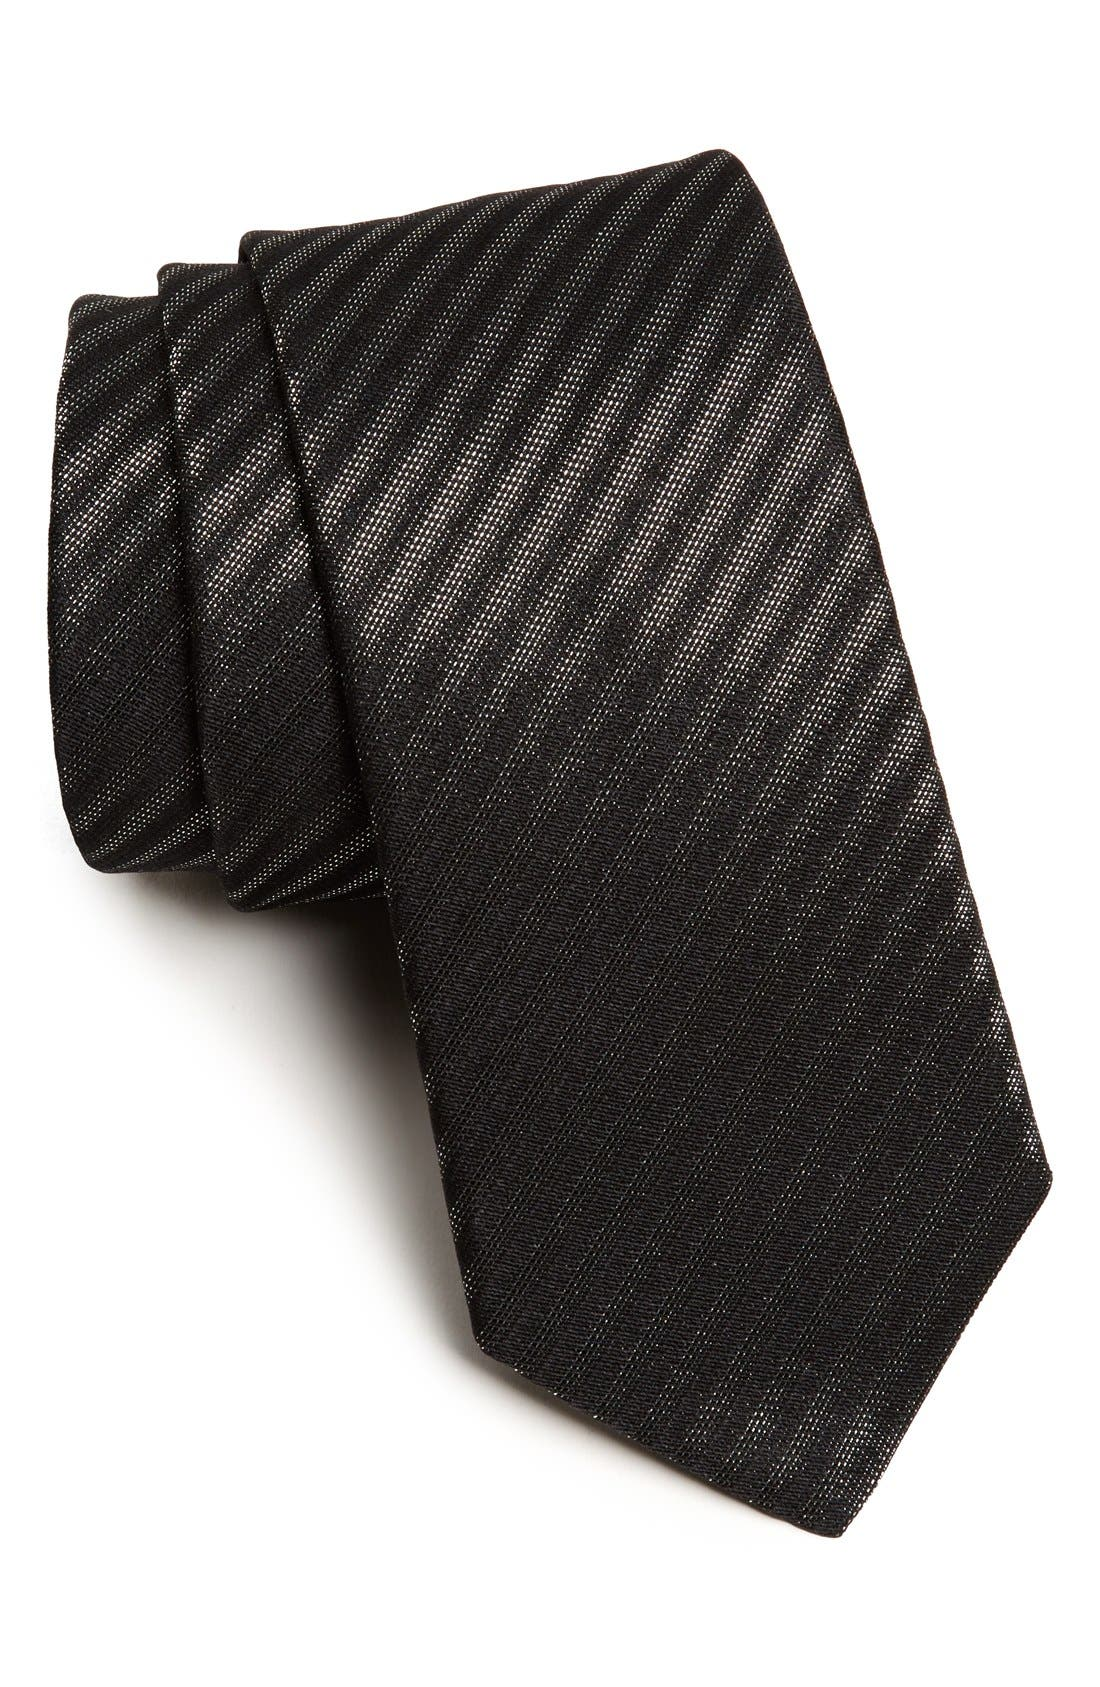 Alternate Image 1 Selected - Yves Saint Laurent Woven Silk Blend Tie